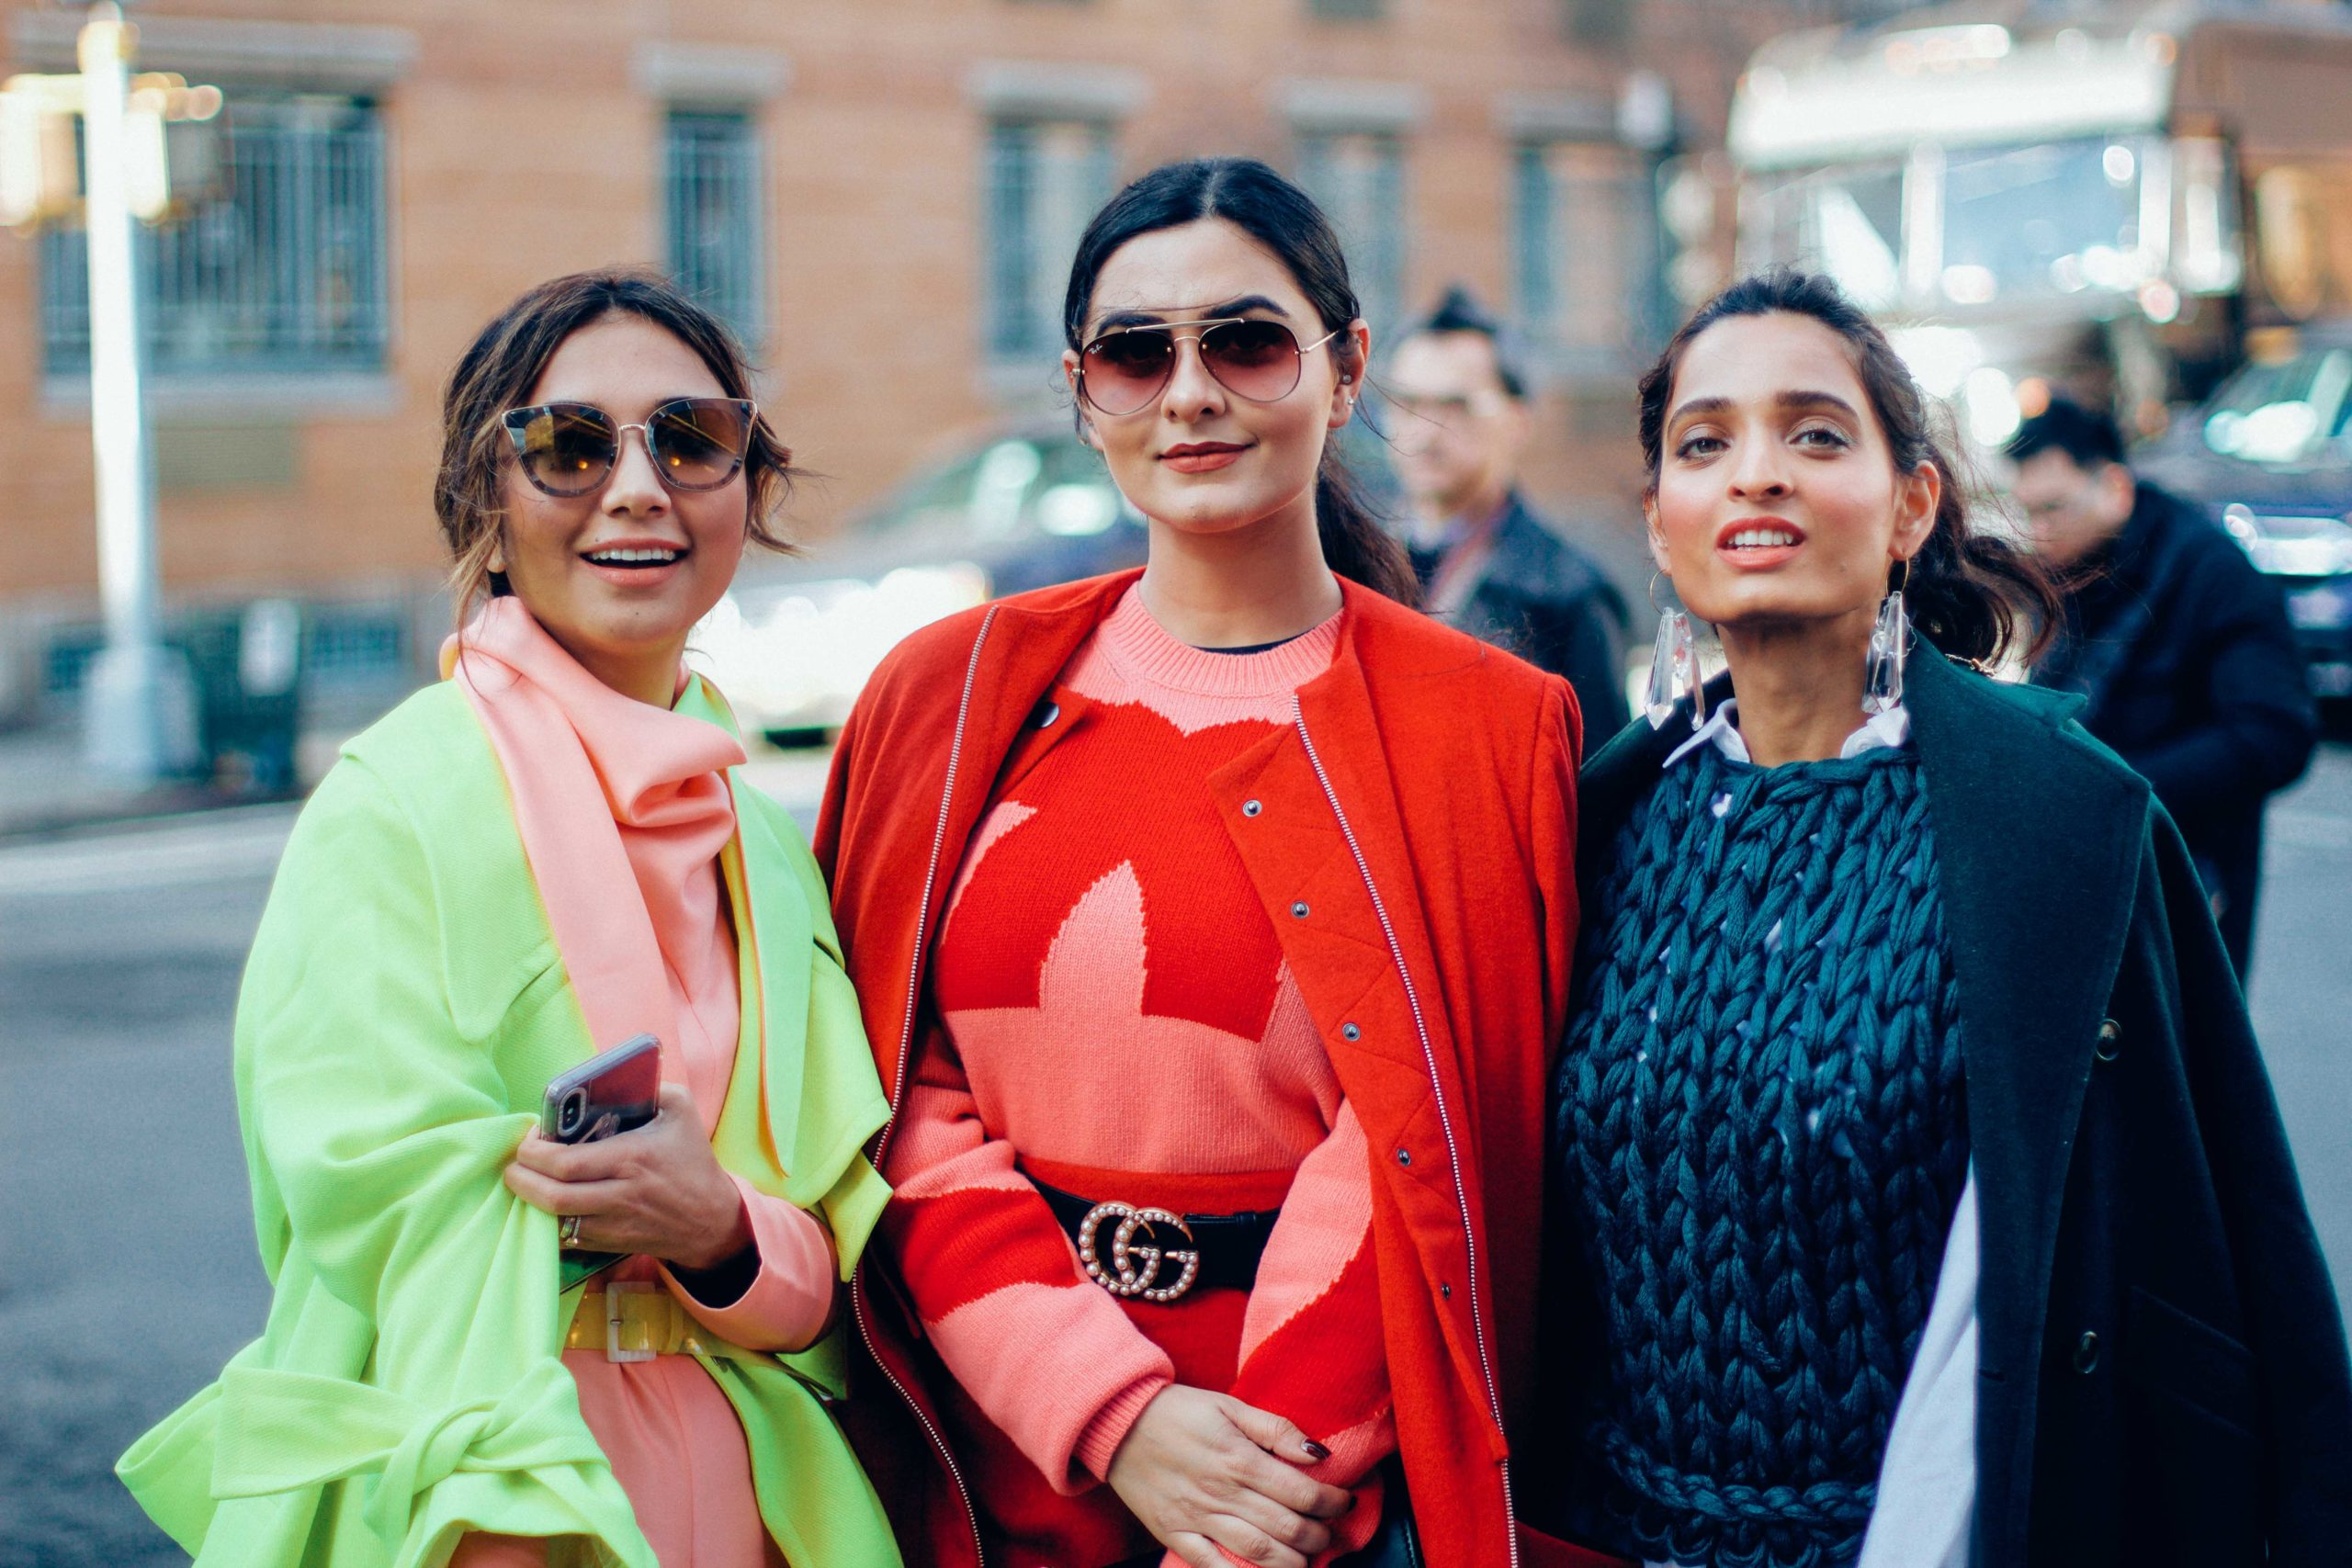 3 girls wearing colour block outfits for fashion week in shades of red and green